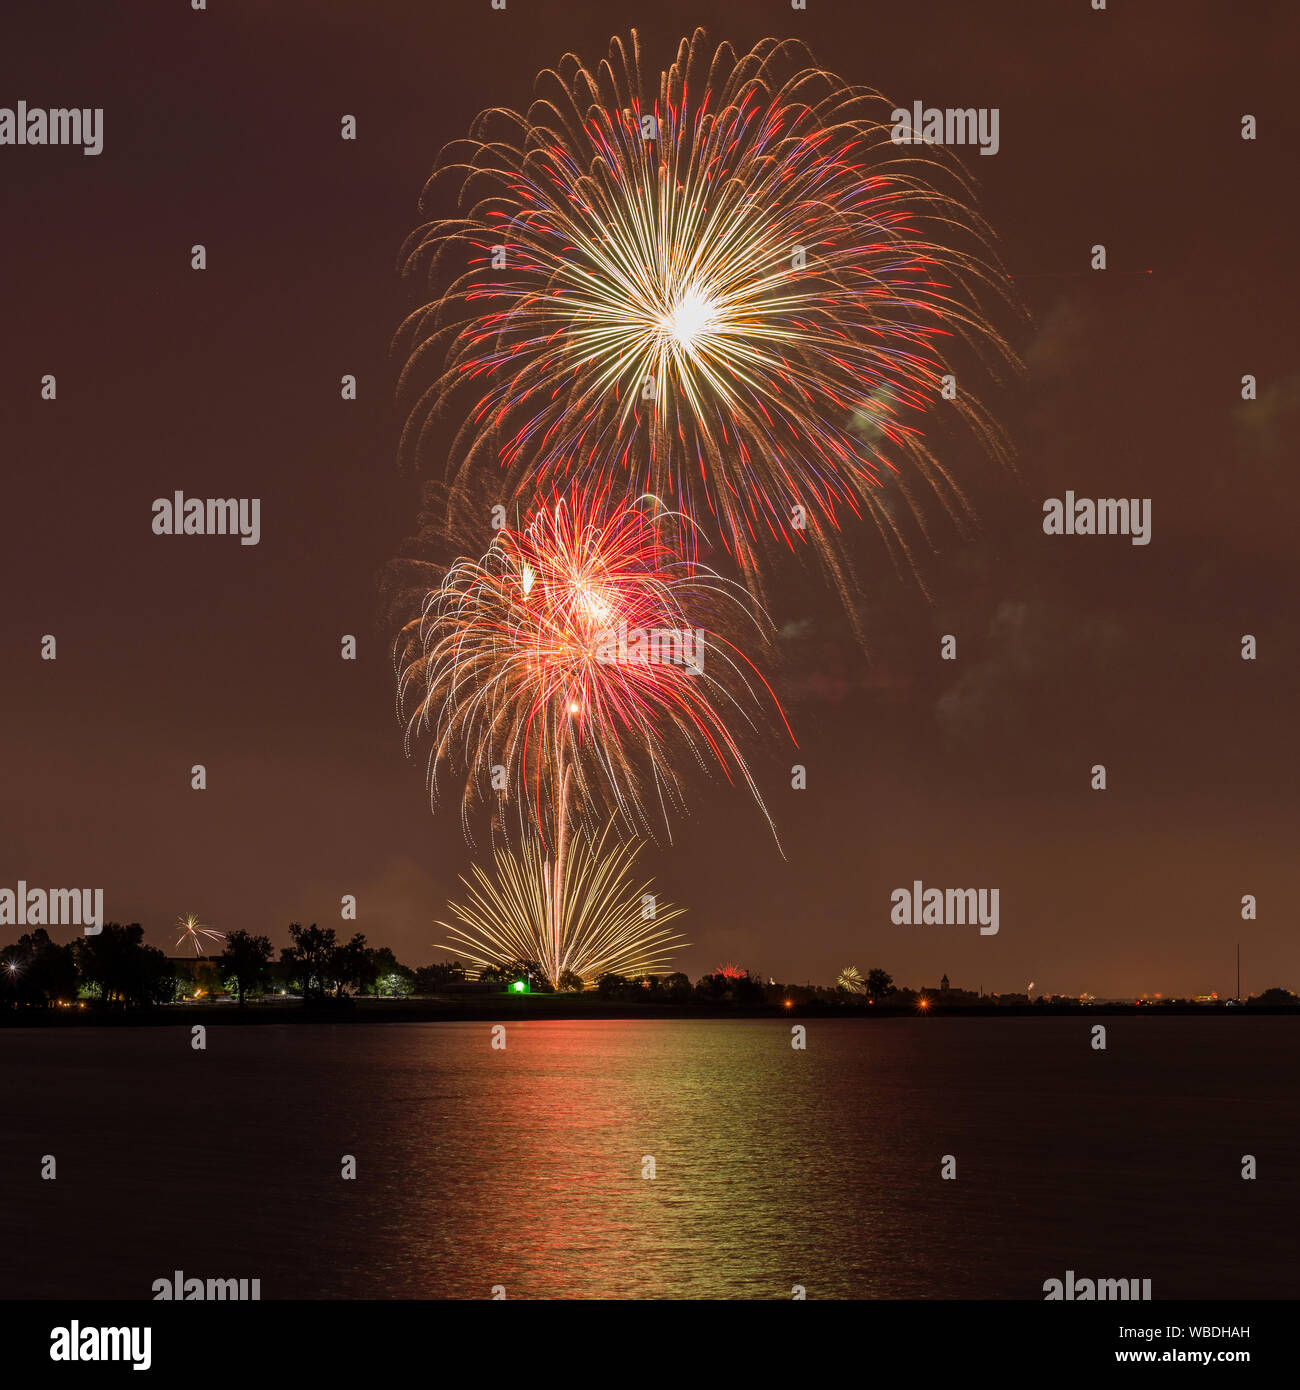 Fireworks Over A Lake - Colorful Fourth of July fireworks light up night sky over Marston Lake, Denver, Colorado, USA. Stock Photo